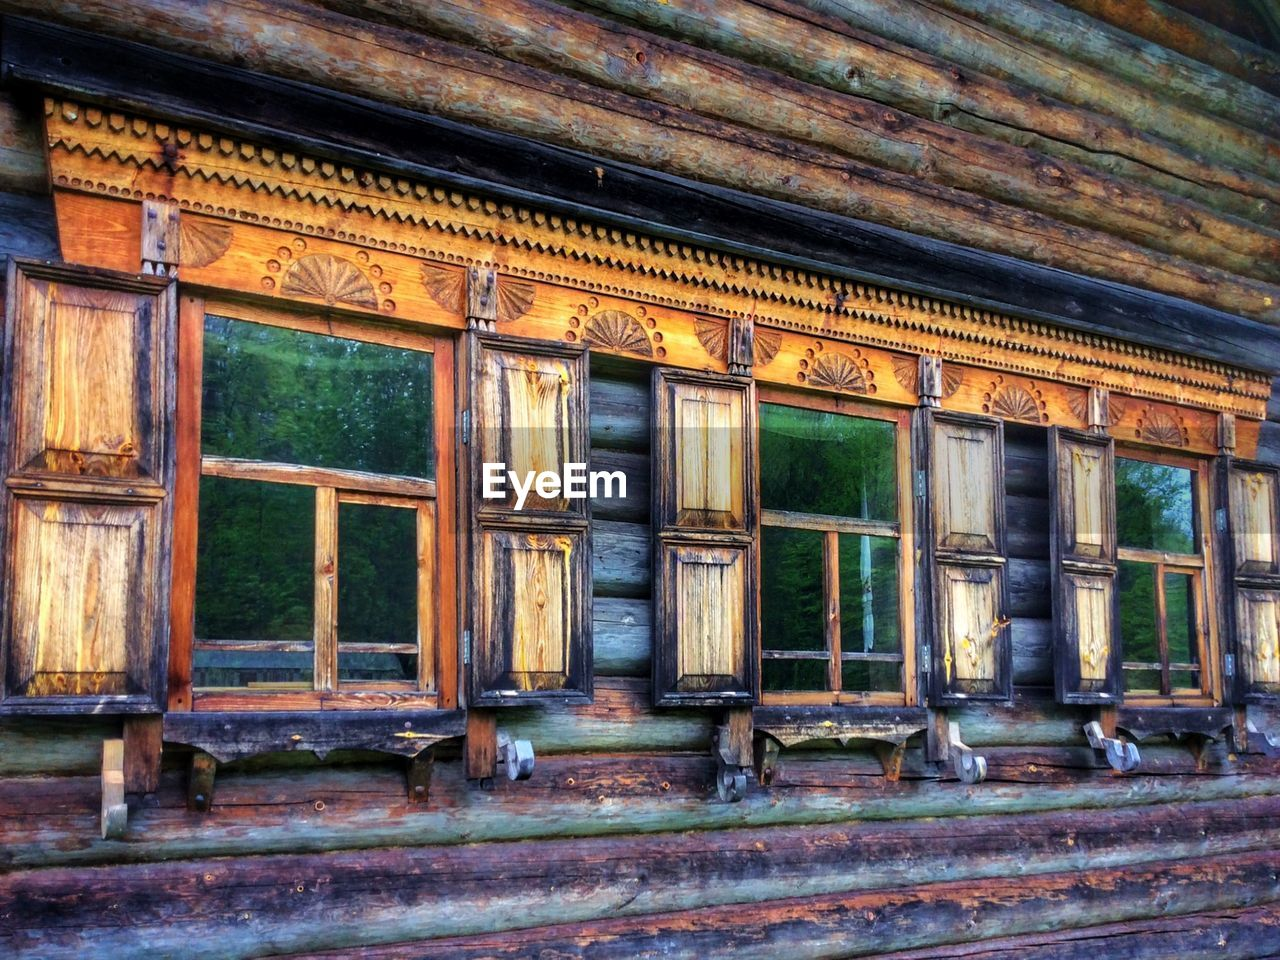 Windows of old wooden house